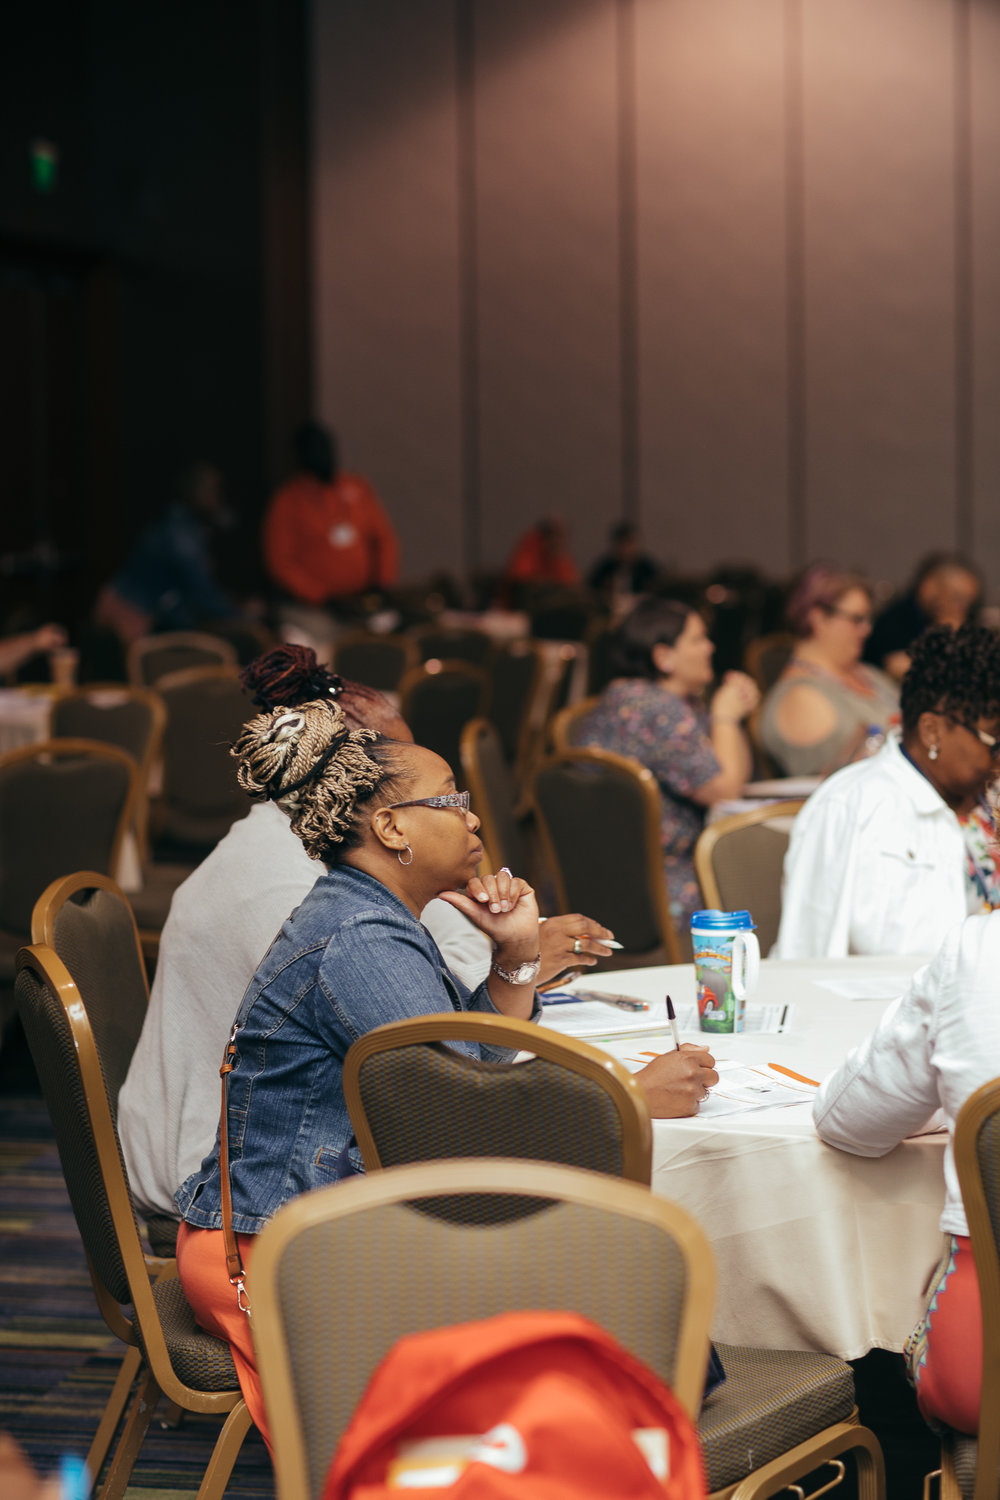 live event commercial photography brand storytelling for education florida conference photographer ©2018abigailbobophotography-112.jpg